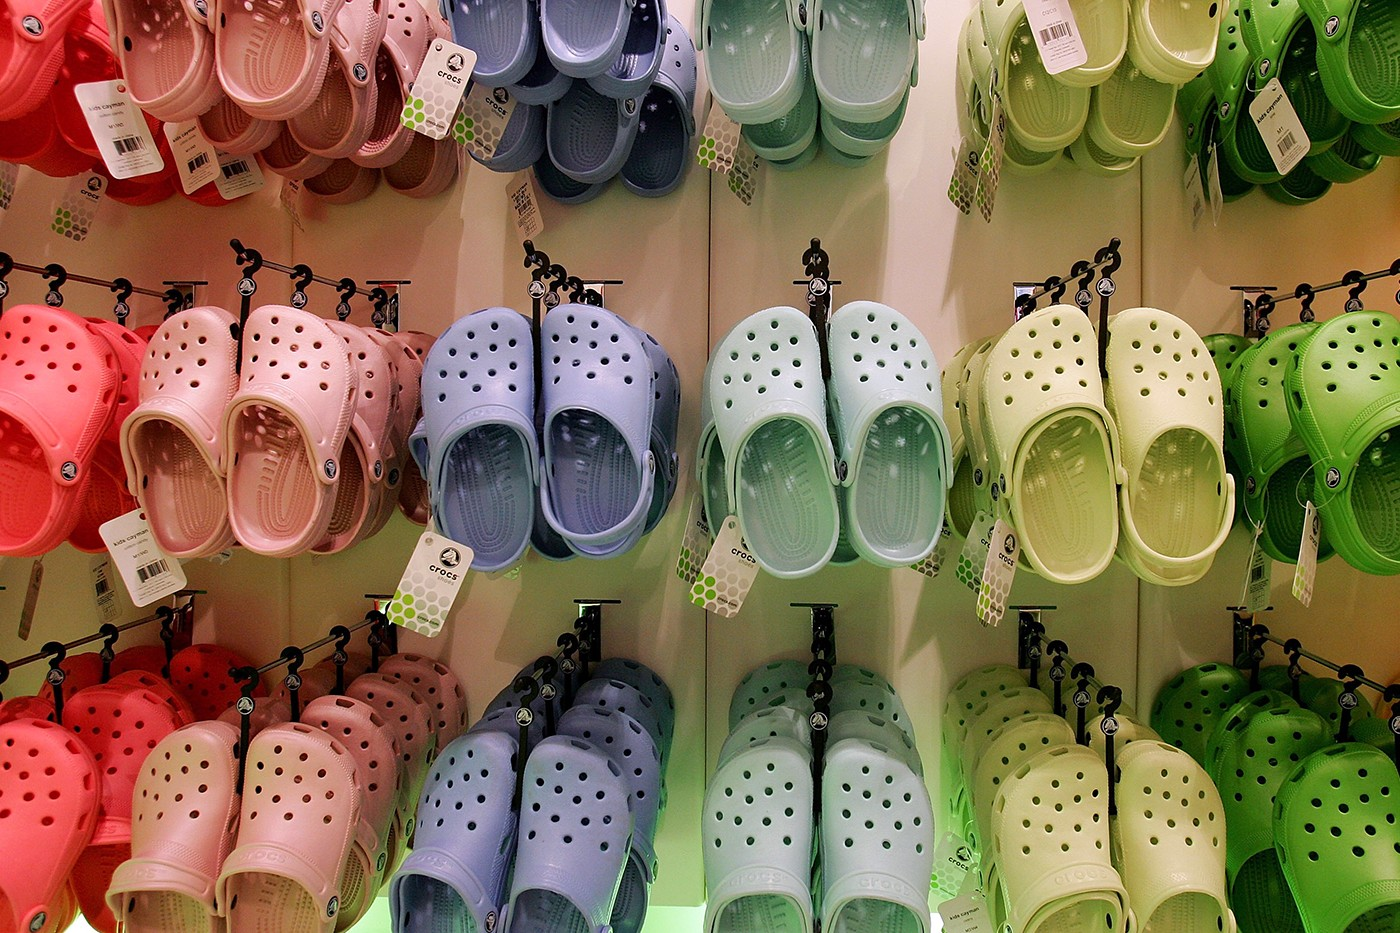 Crocs All-Time High COVID-19 q1 2021 Earnings Report Info Supreme Corso Garibaldi 20 milan may 6 opening teaser Red Hot Chili Peppers Are Selling Their Song Catalog to Hipgnosis for Upwards of $140 Million USD